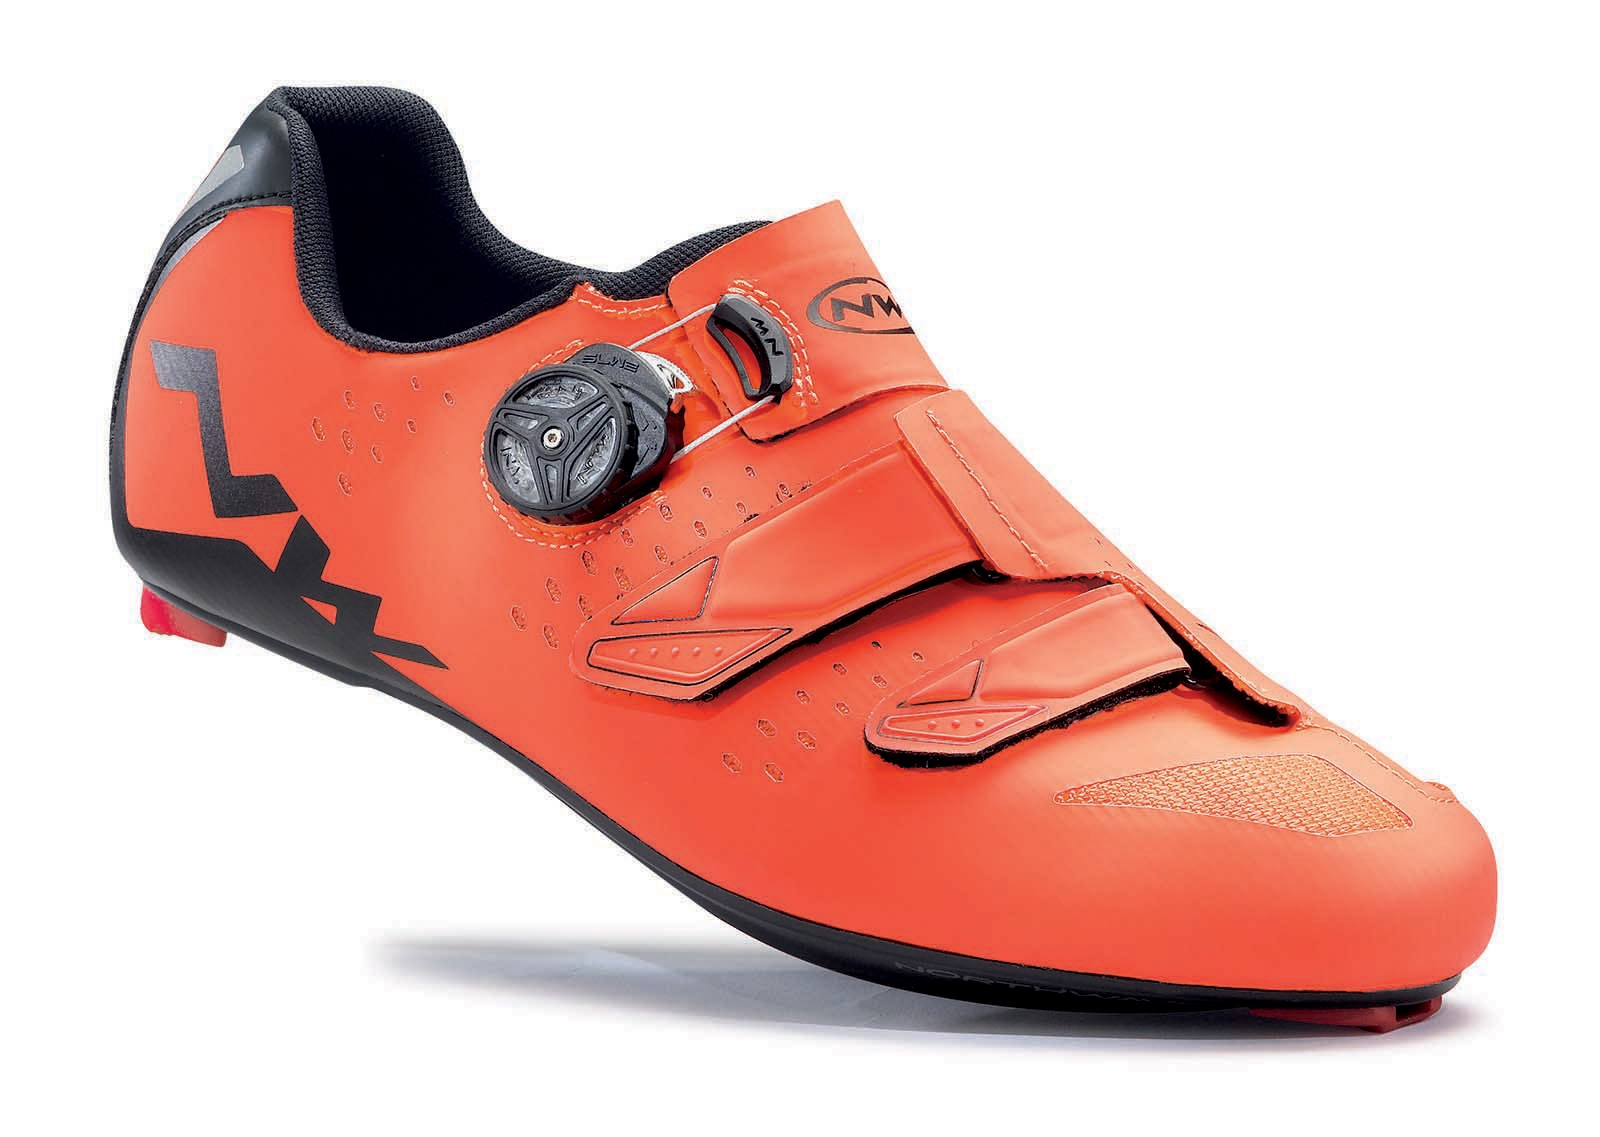 NORTHWAVE Man road cycling shoes PHANTOM CARBON lobster orange/black